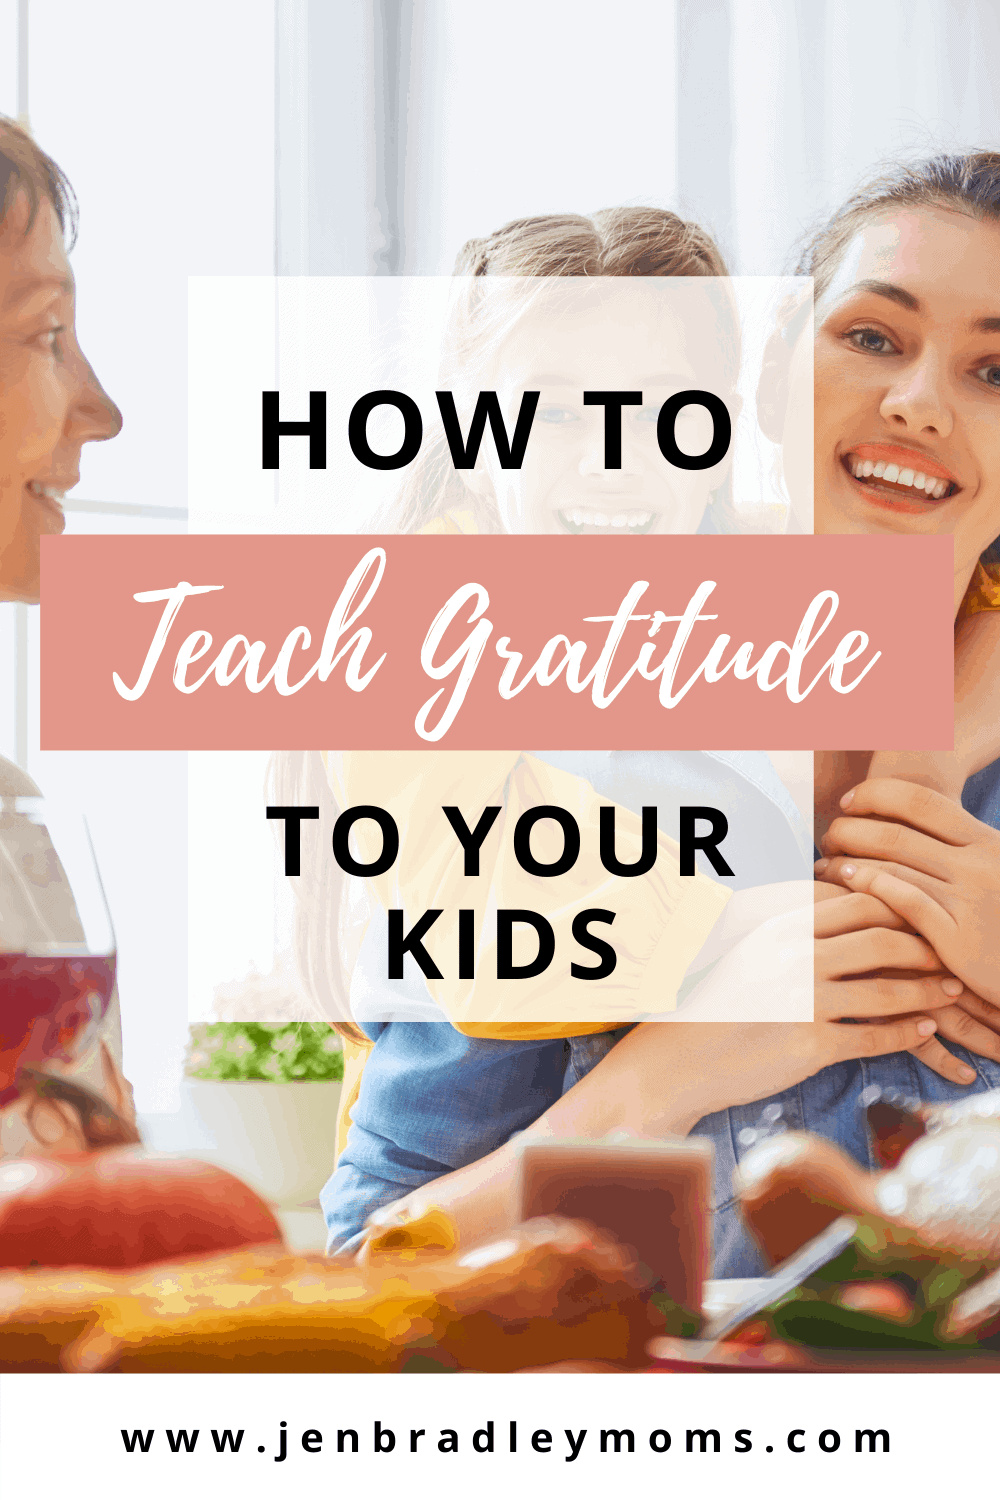 How to Teach Gratitude to Your Kids